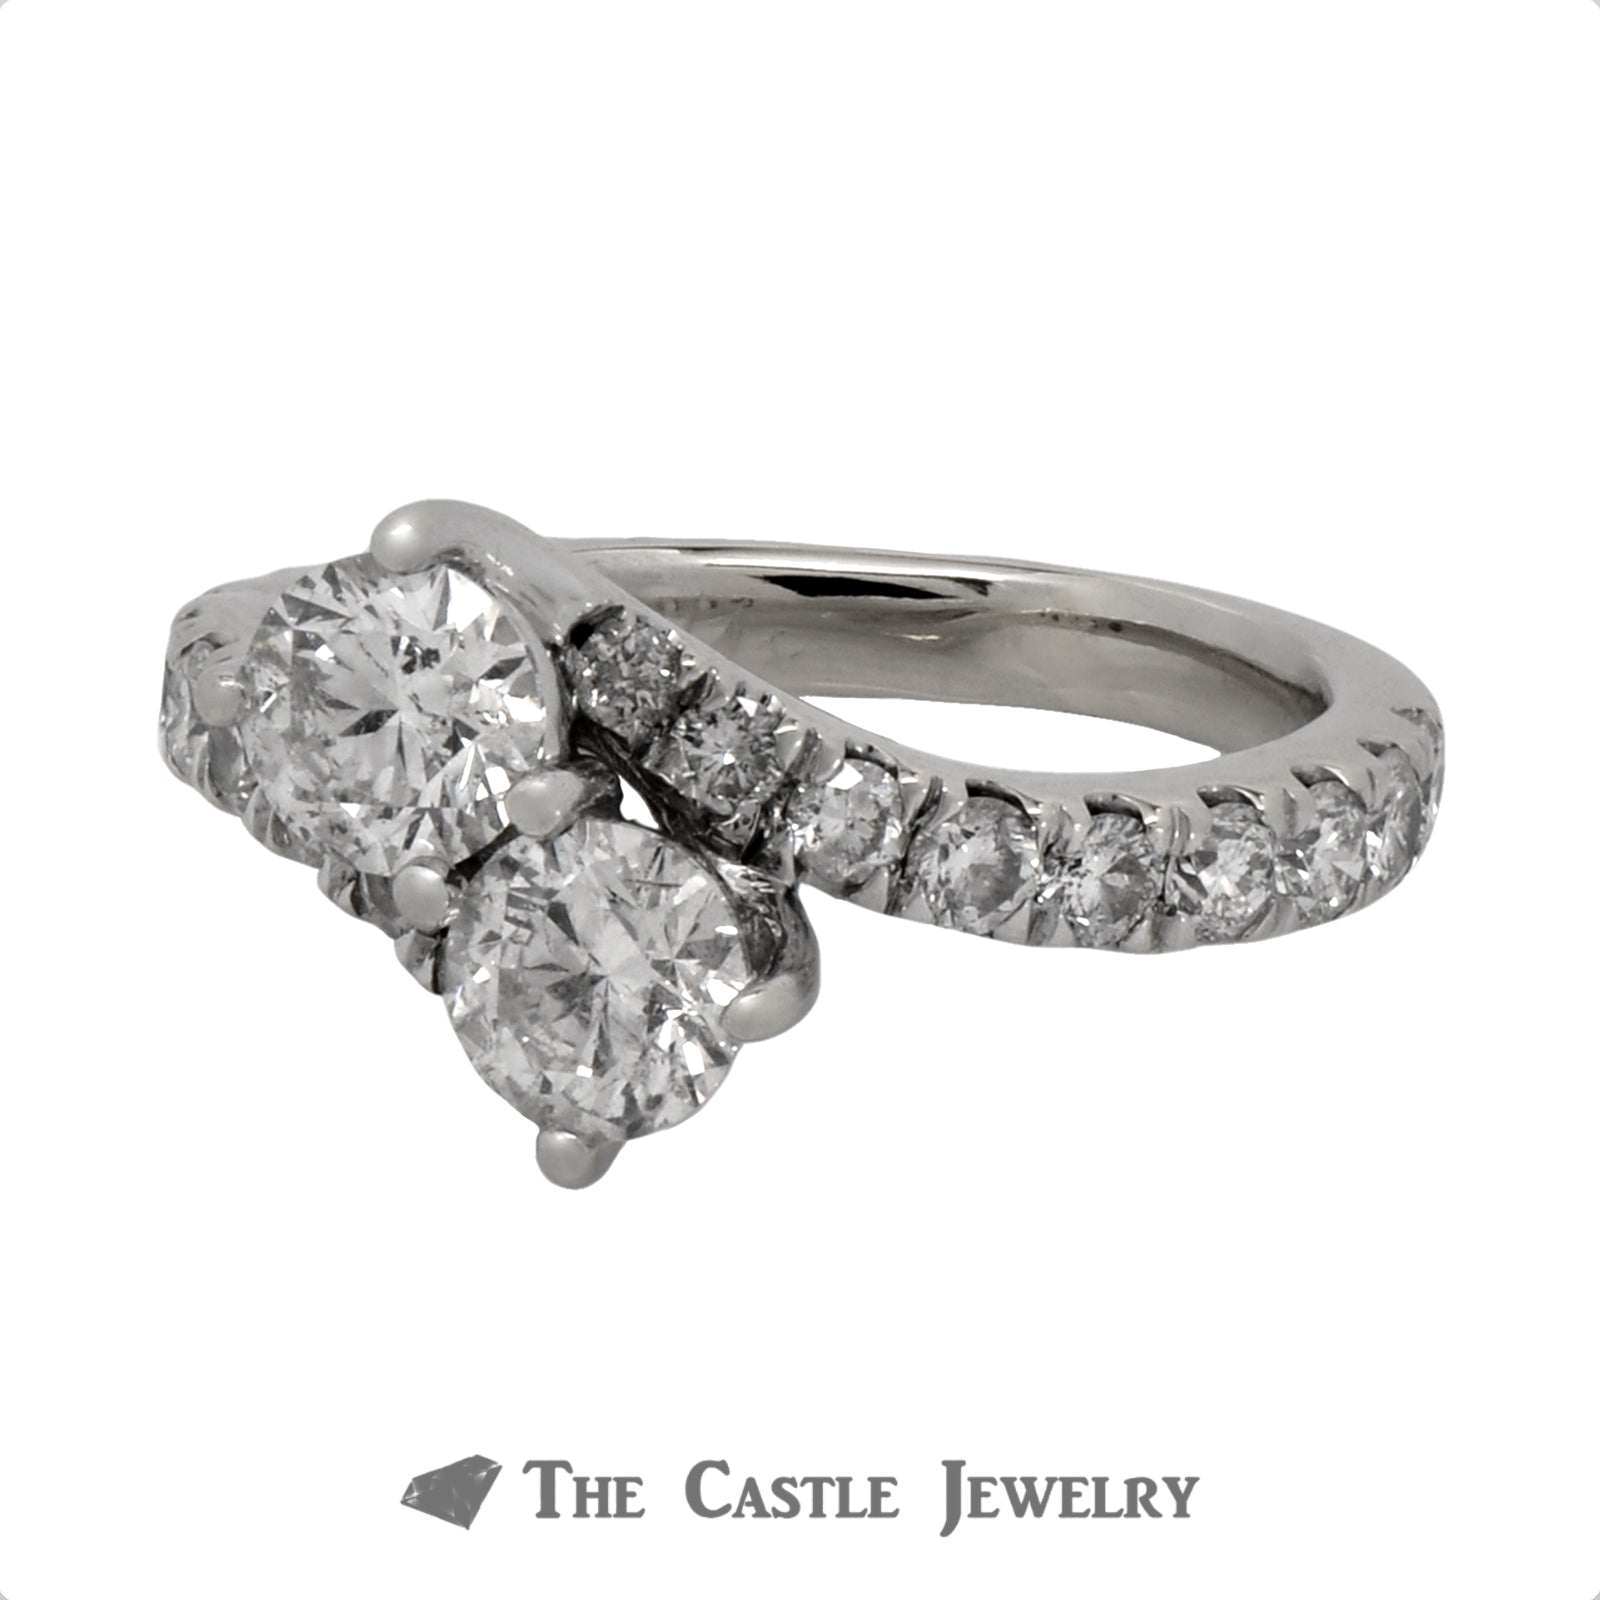 2cttw Ever Us Designer Engagement Ring in 14k White Gold Bypass Setting-2